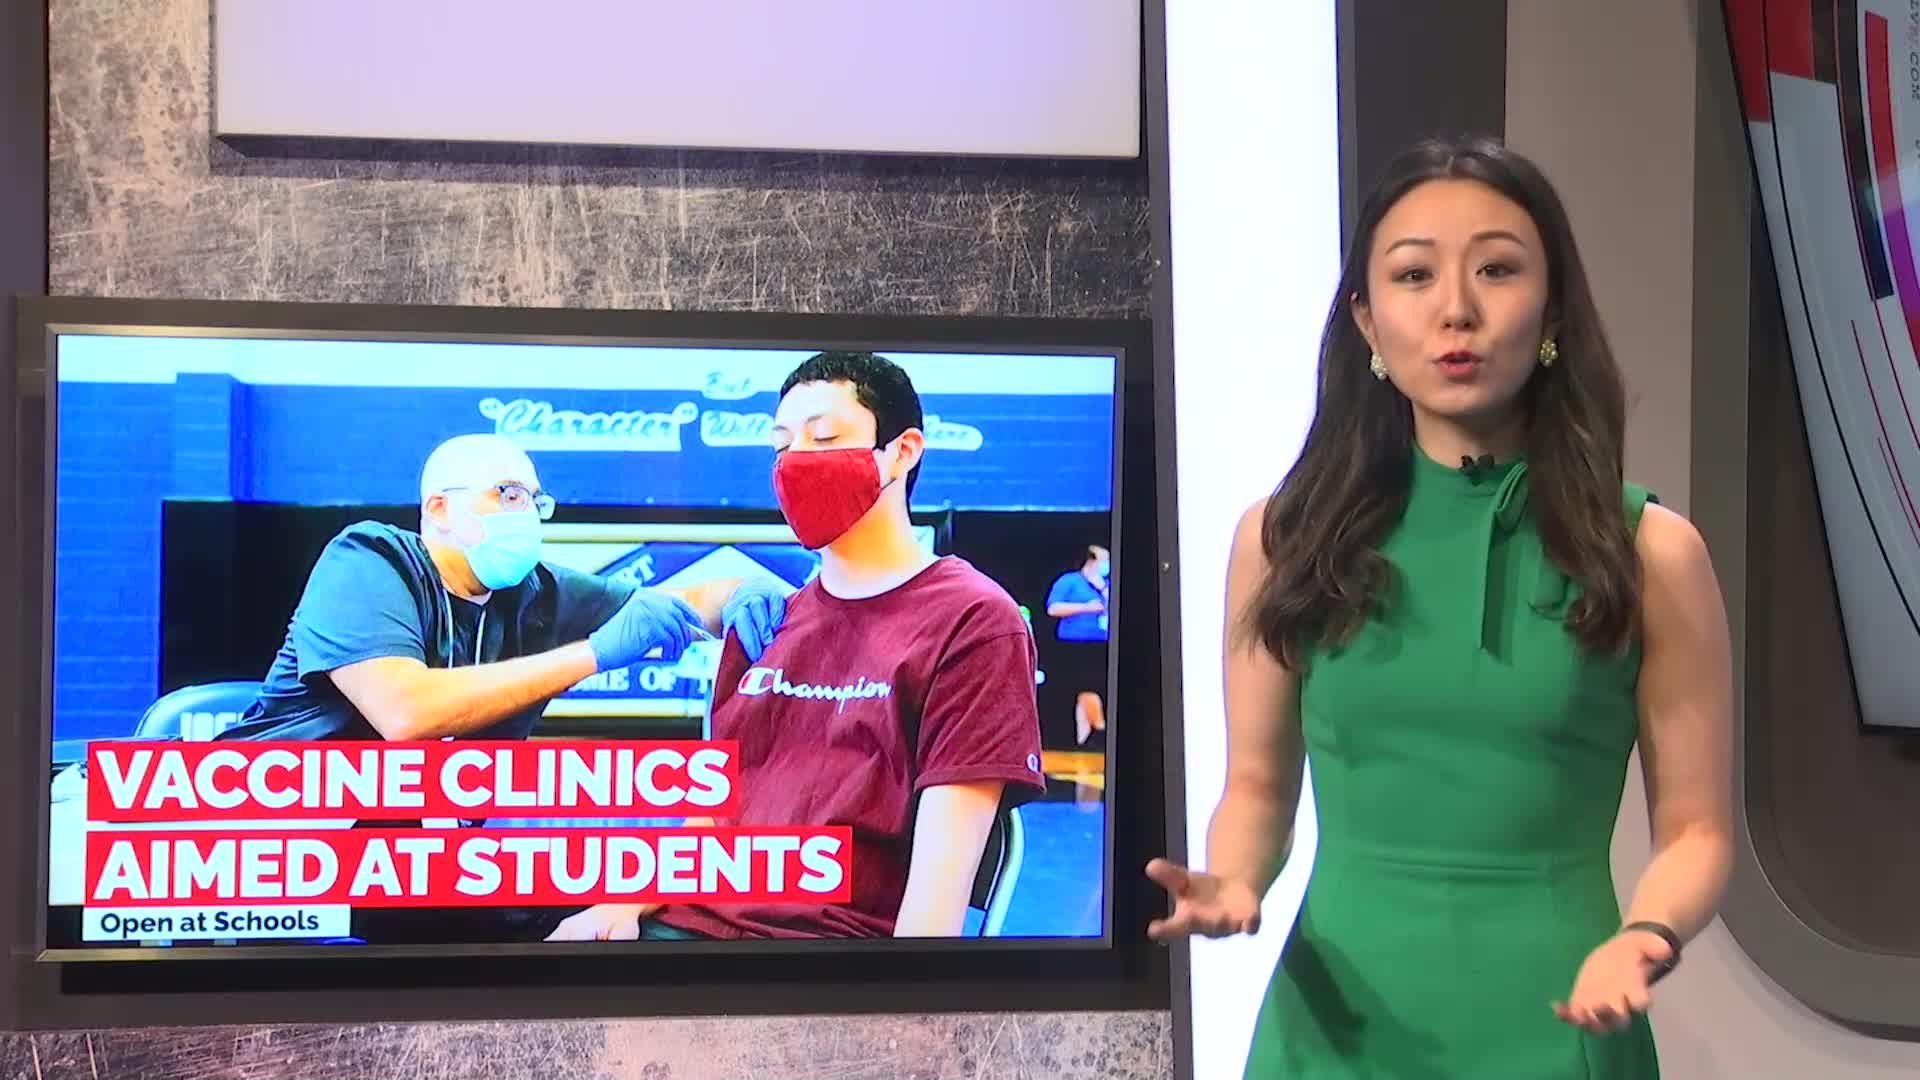 7@7PM Vaccine Clinics Aimed at Students